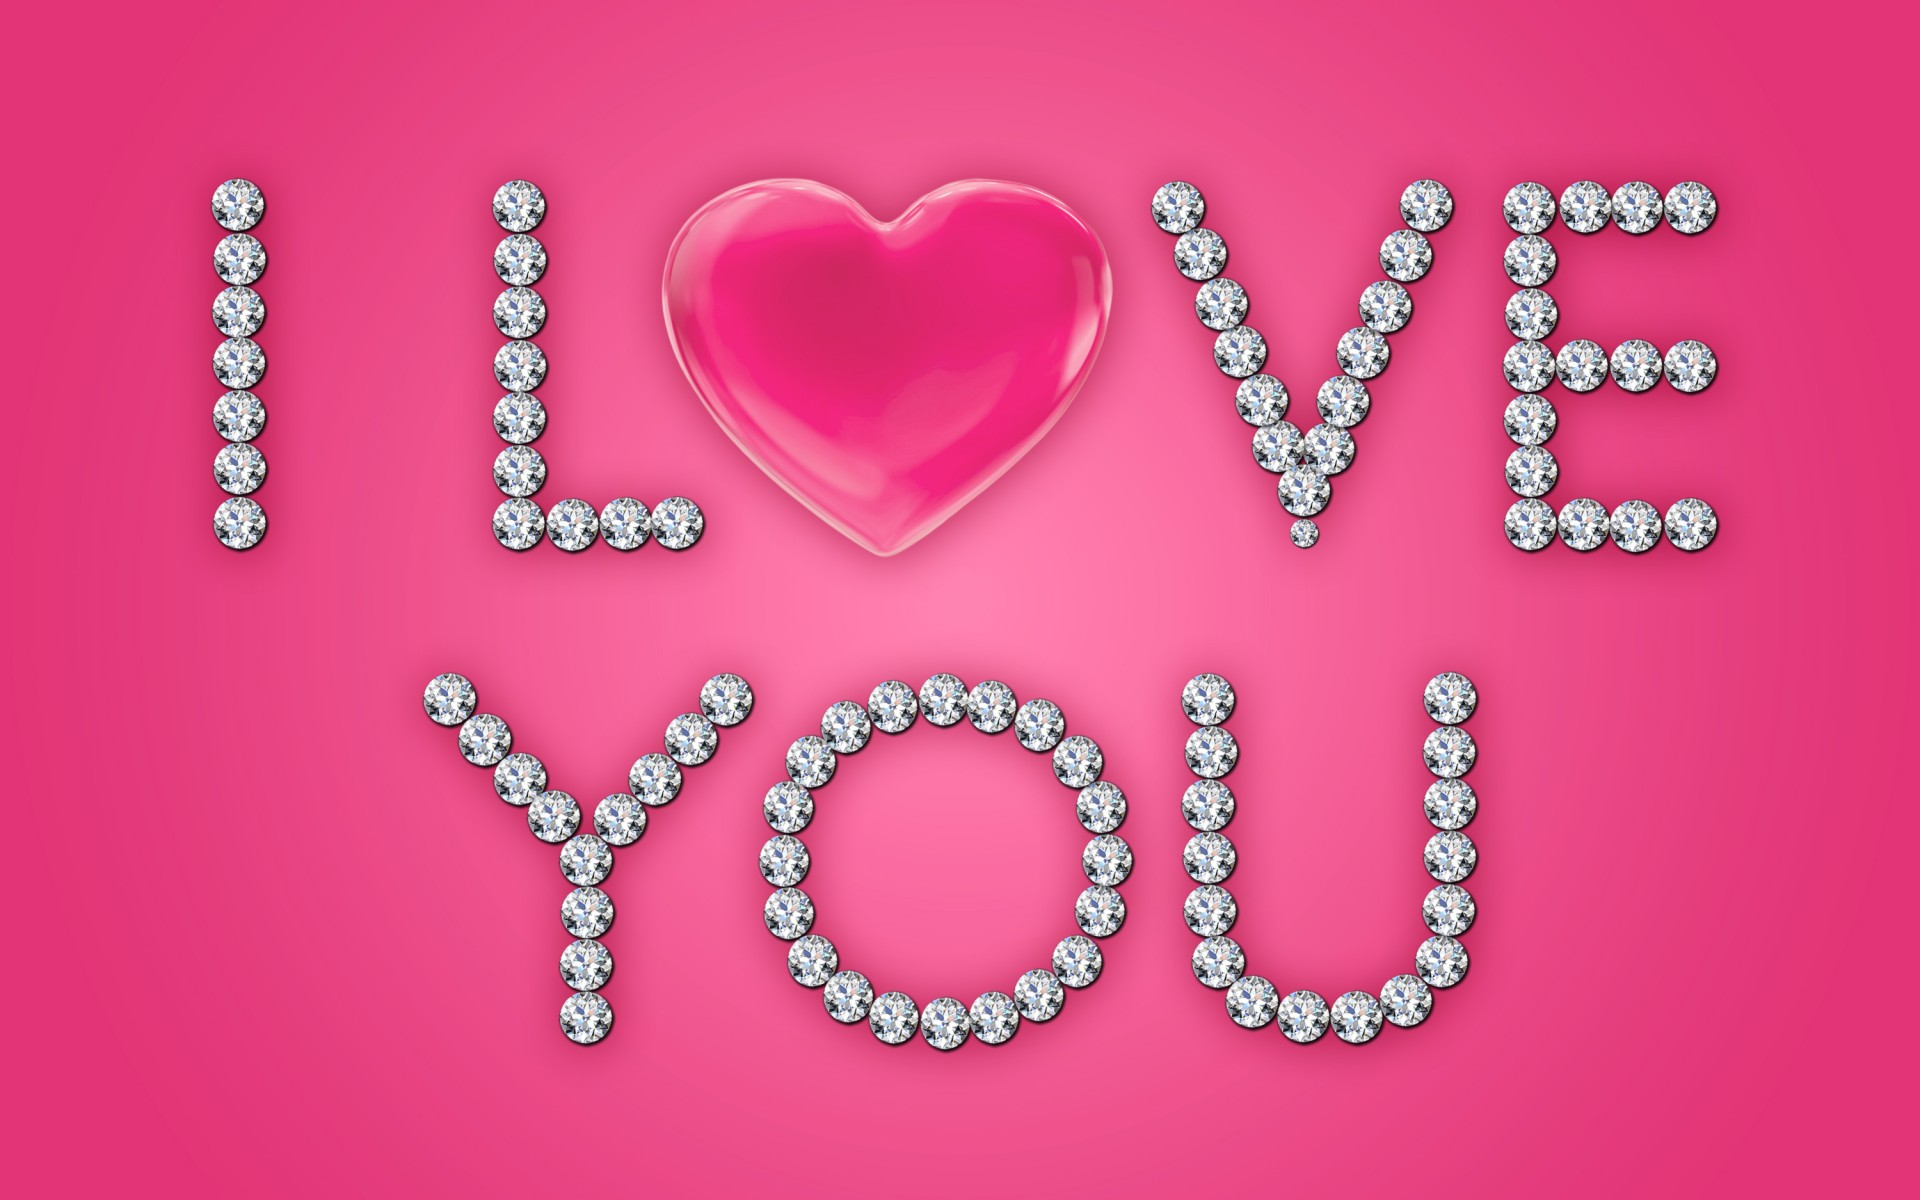 I love you heart wallpaper